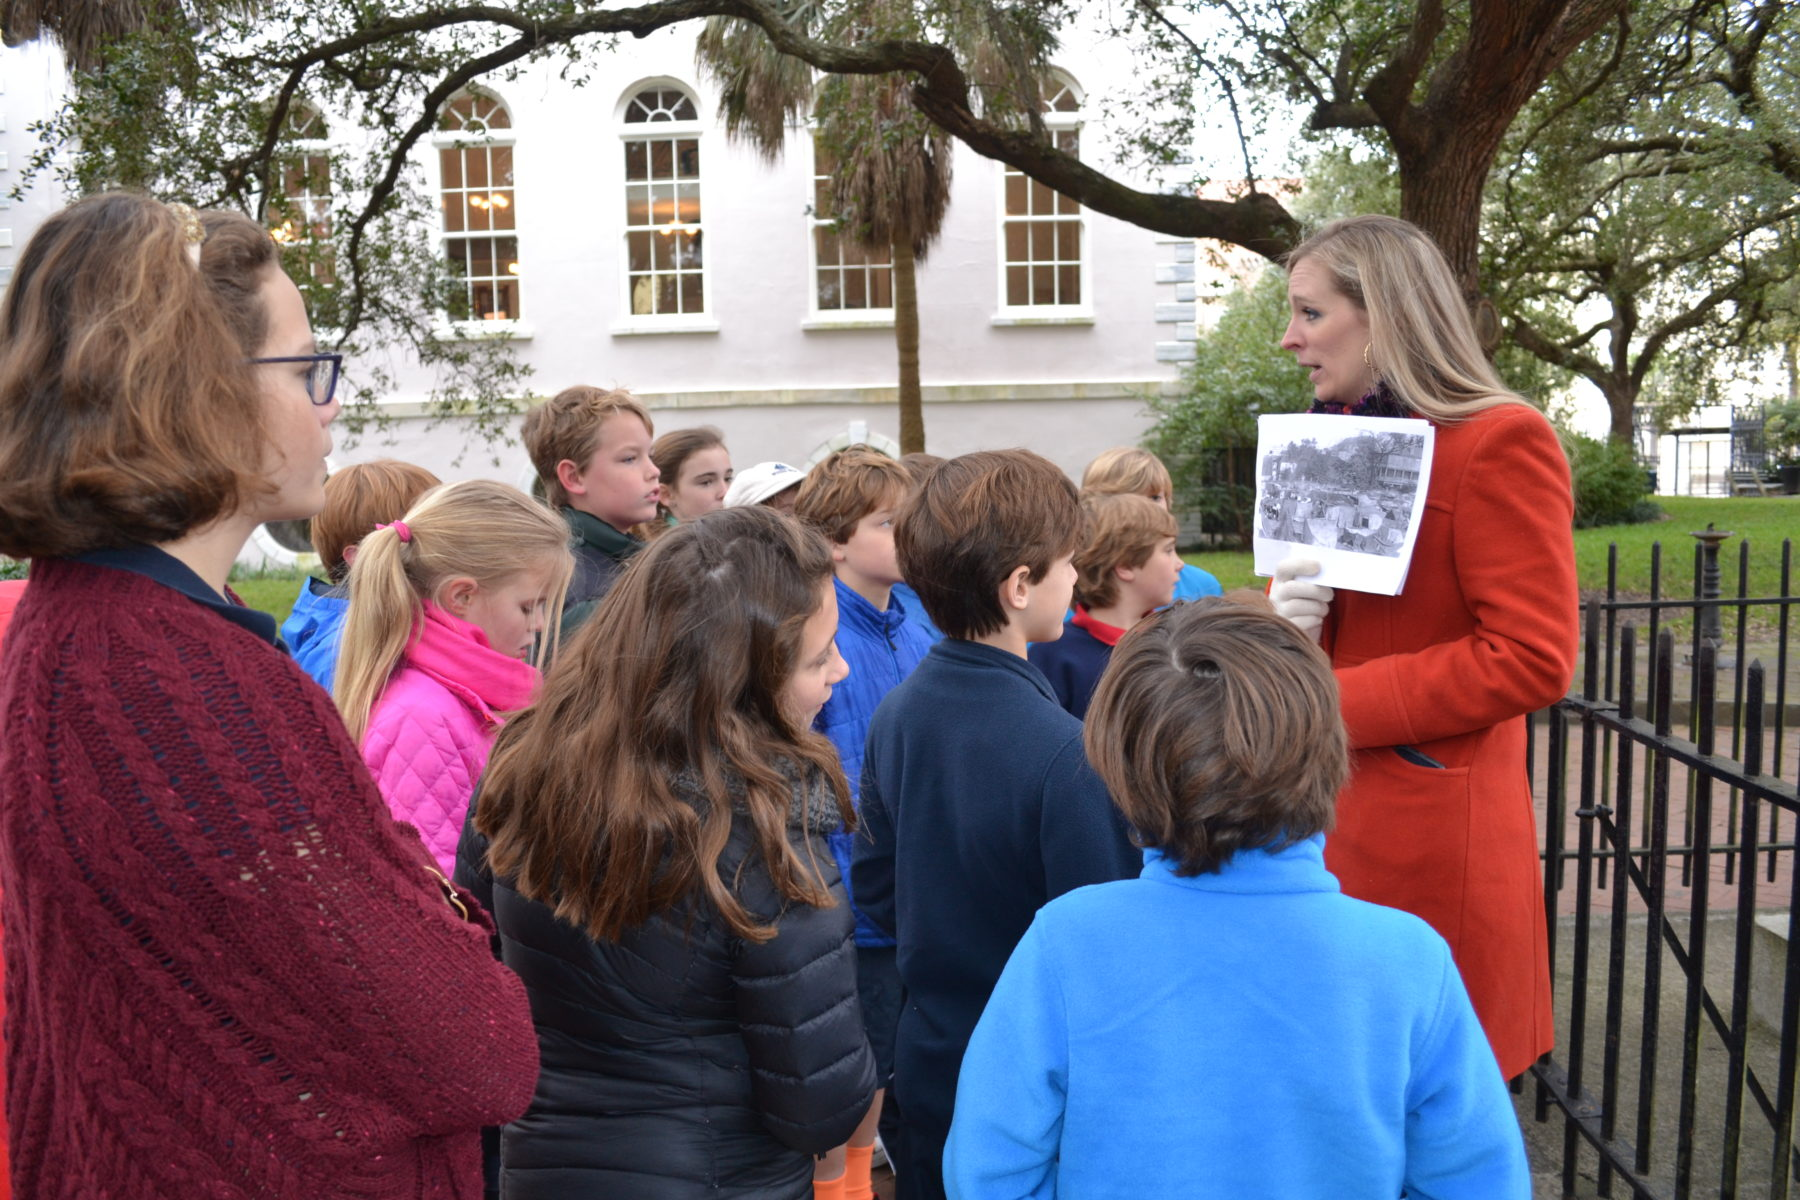 teacher instructs students during charleston history field trip